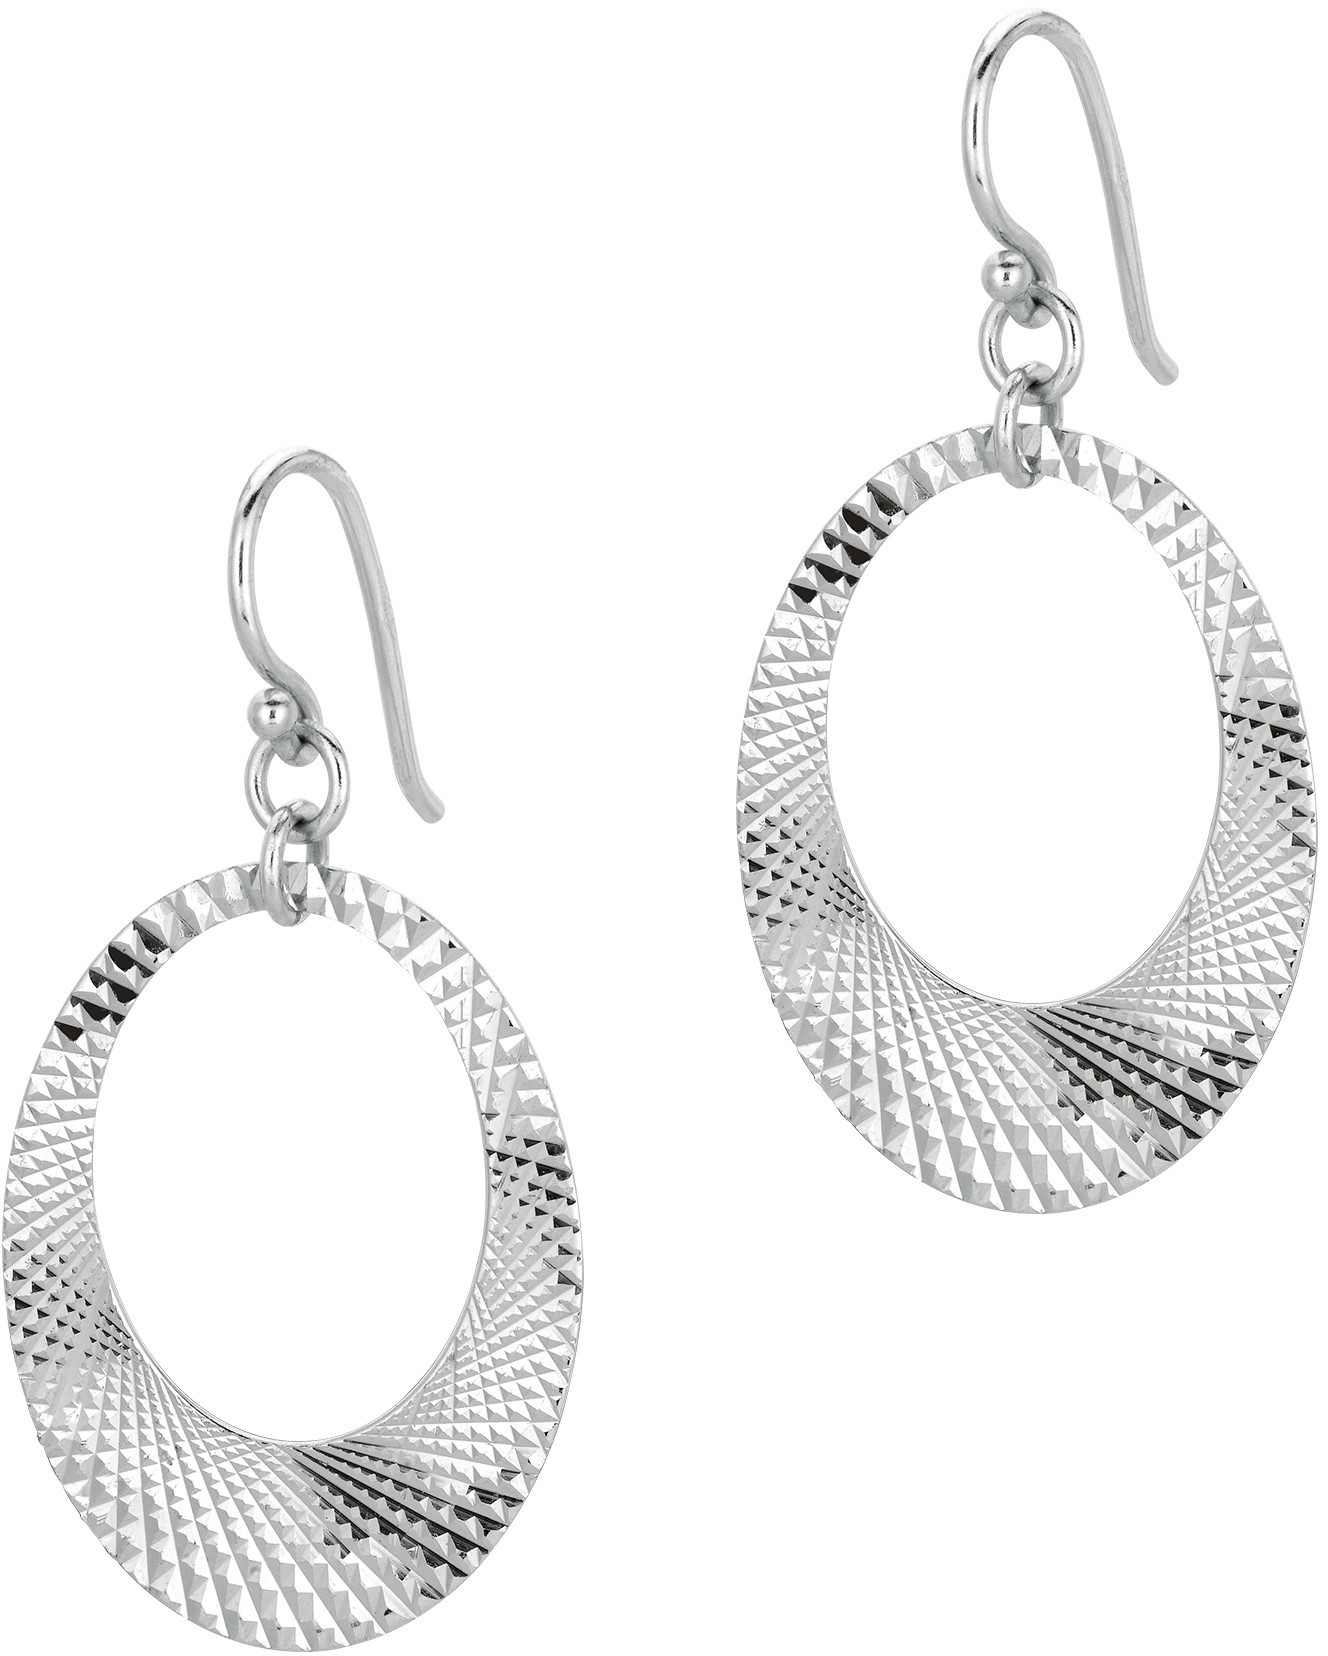 Silver Rhodium Plated Textured Shiny Open Oval In Oval Type Drop Earrings